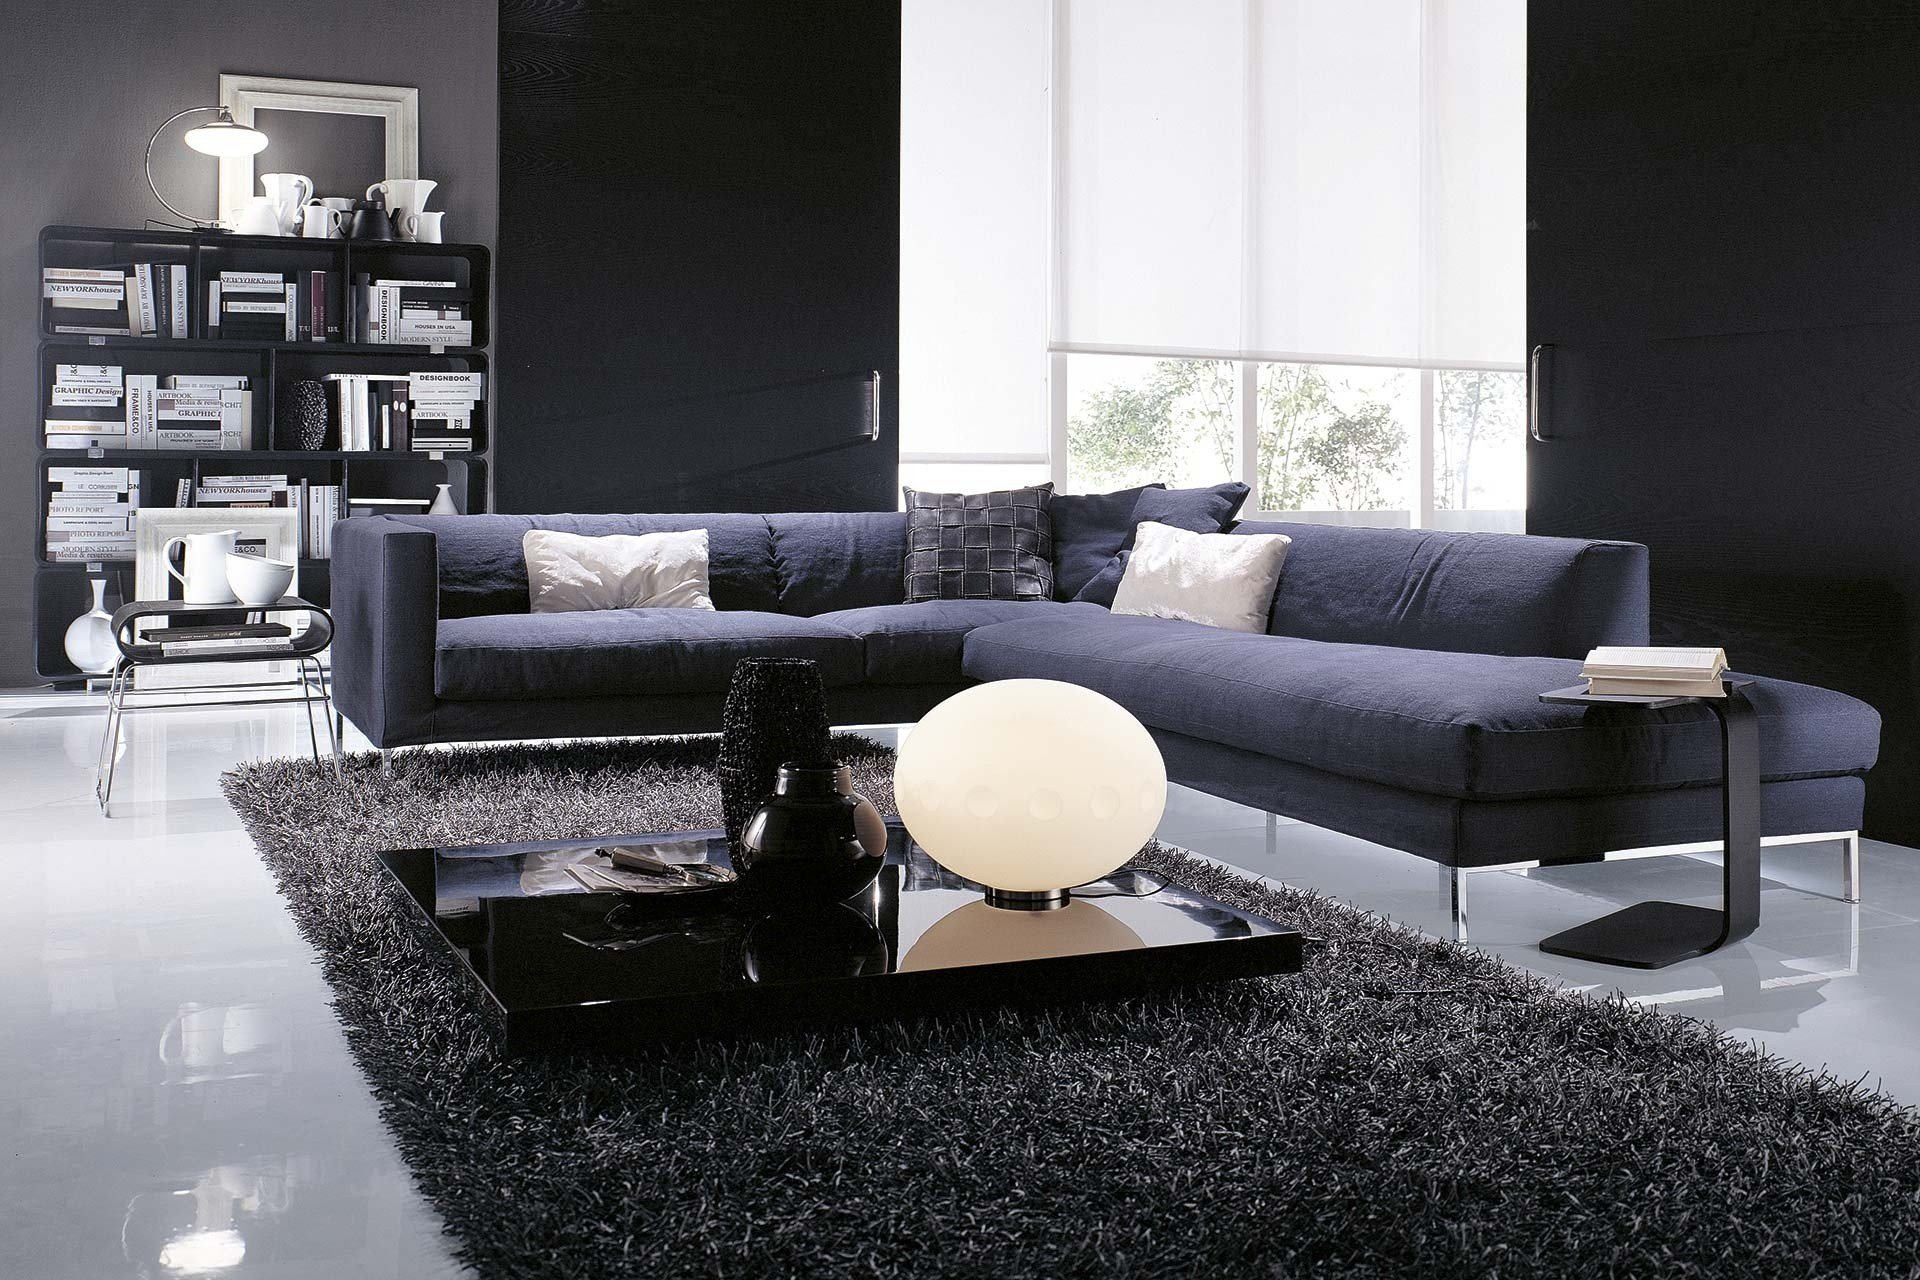 OTTO Sectional sofa by FRIGERIO POLTRONE E DIVANI